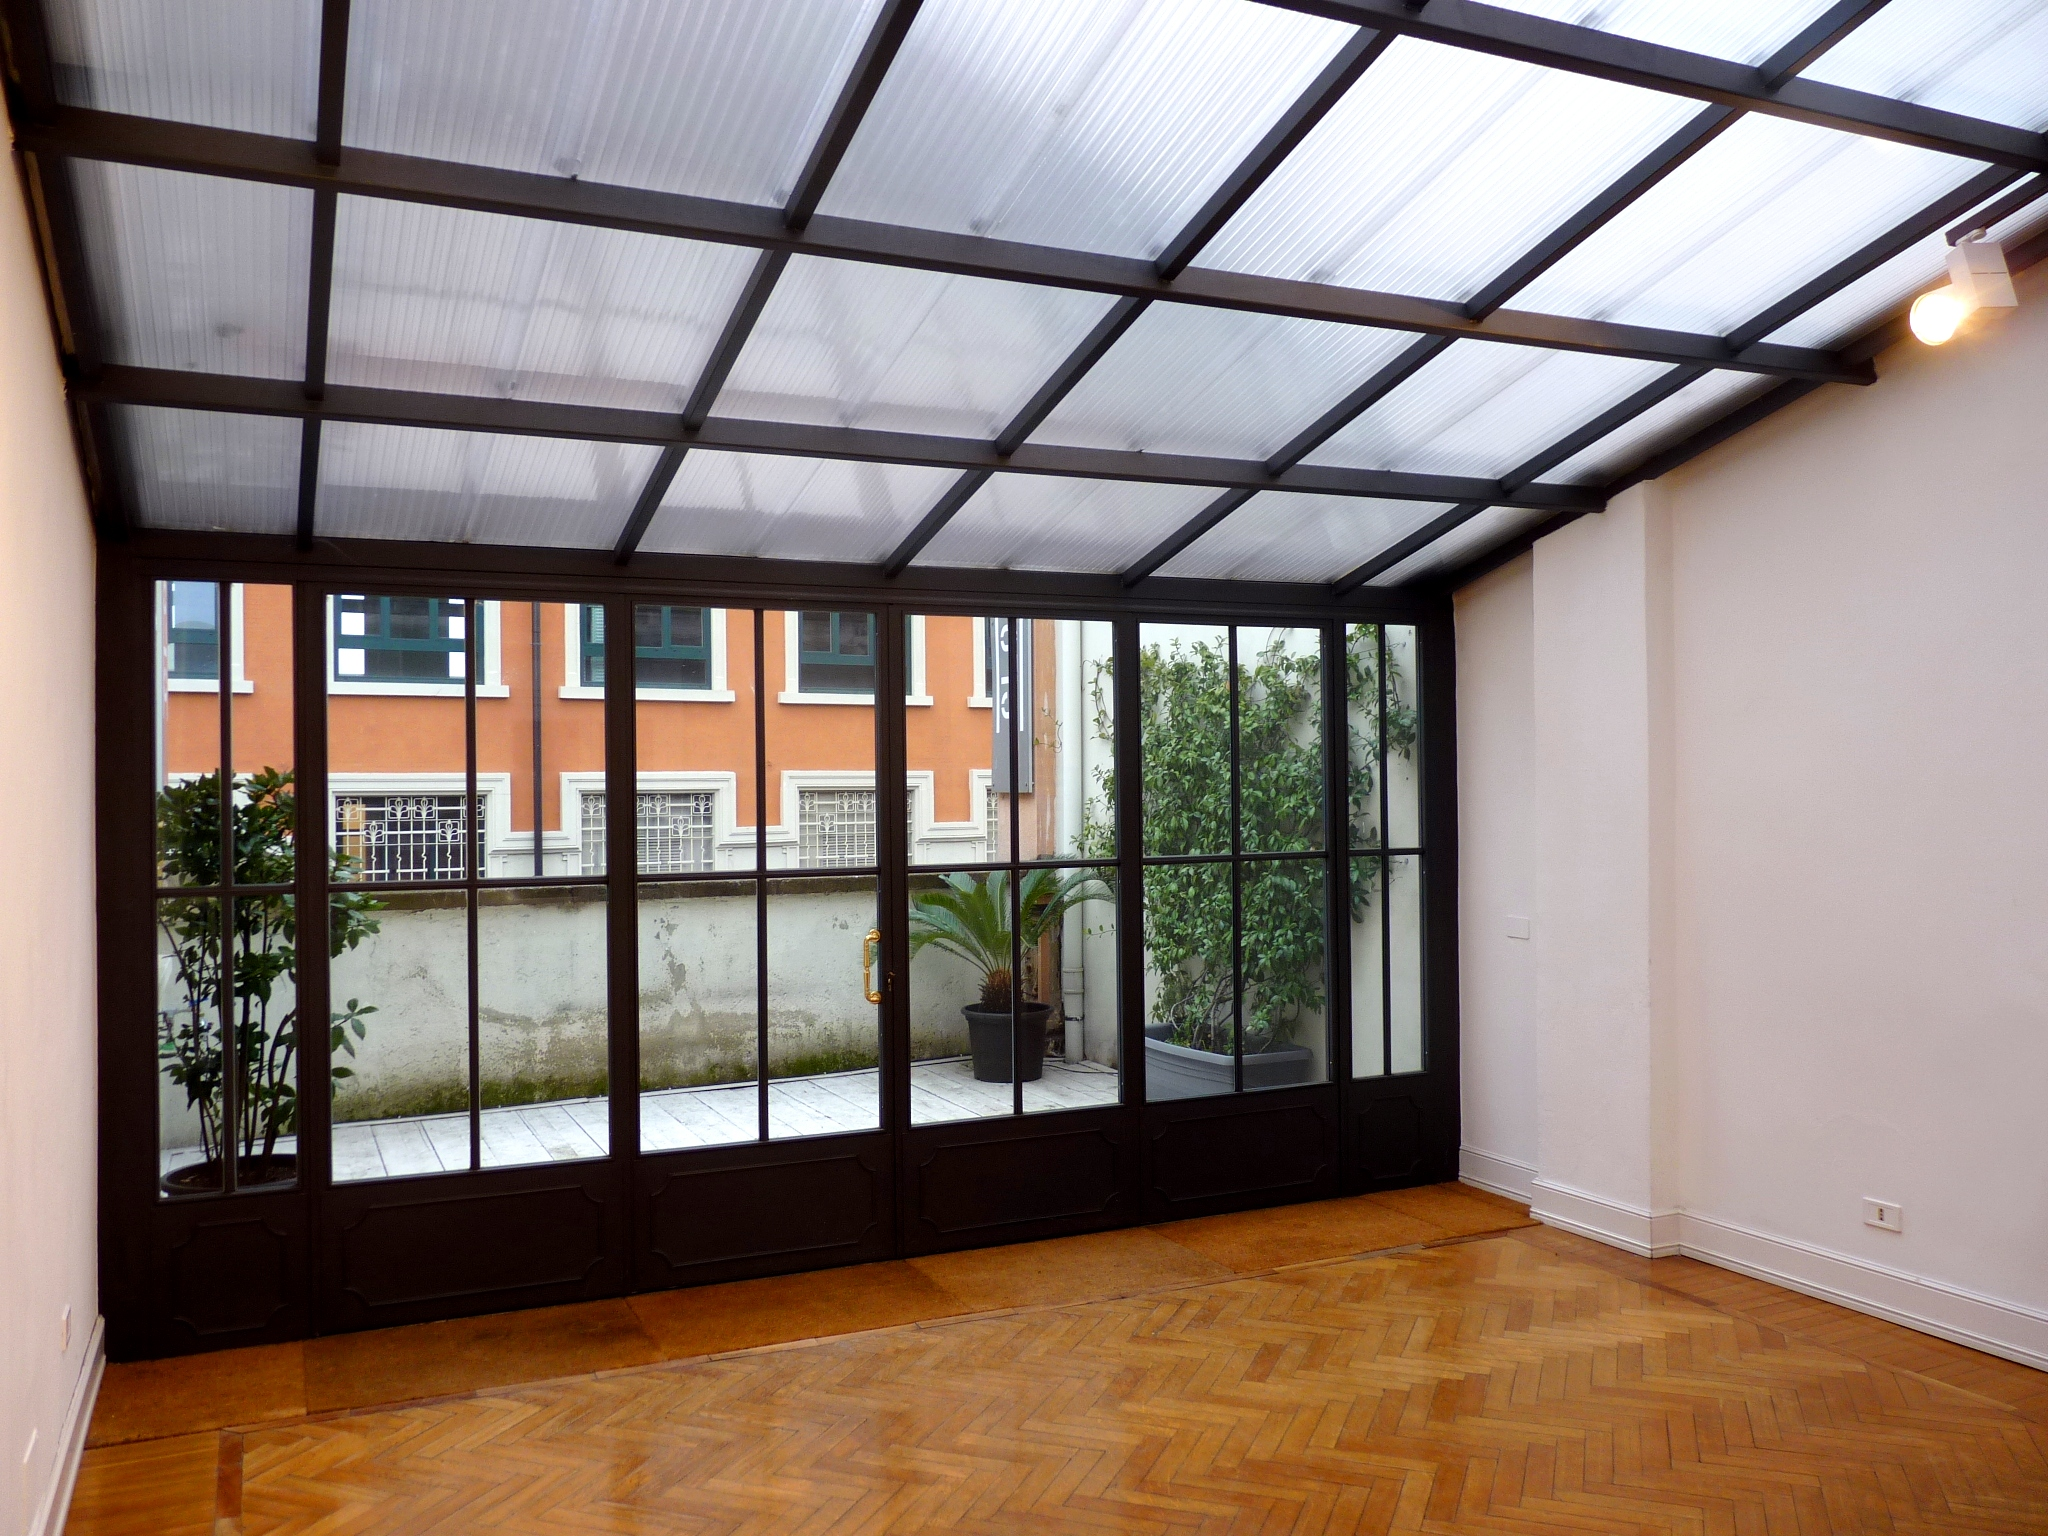 Opificio 31-Loft - Loft, Showroom di 300mq in Via Tortona 31 | location disallestita 4